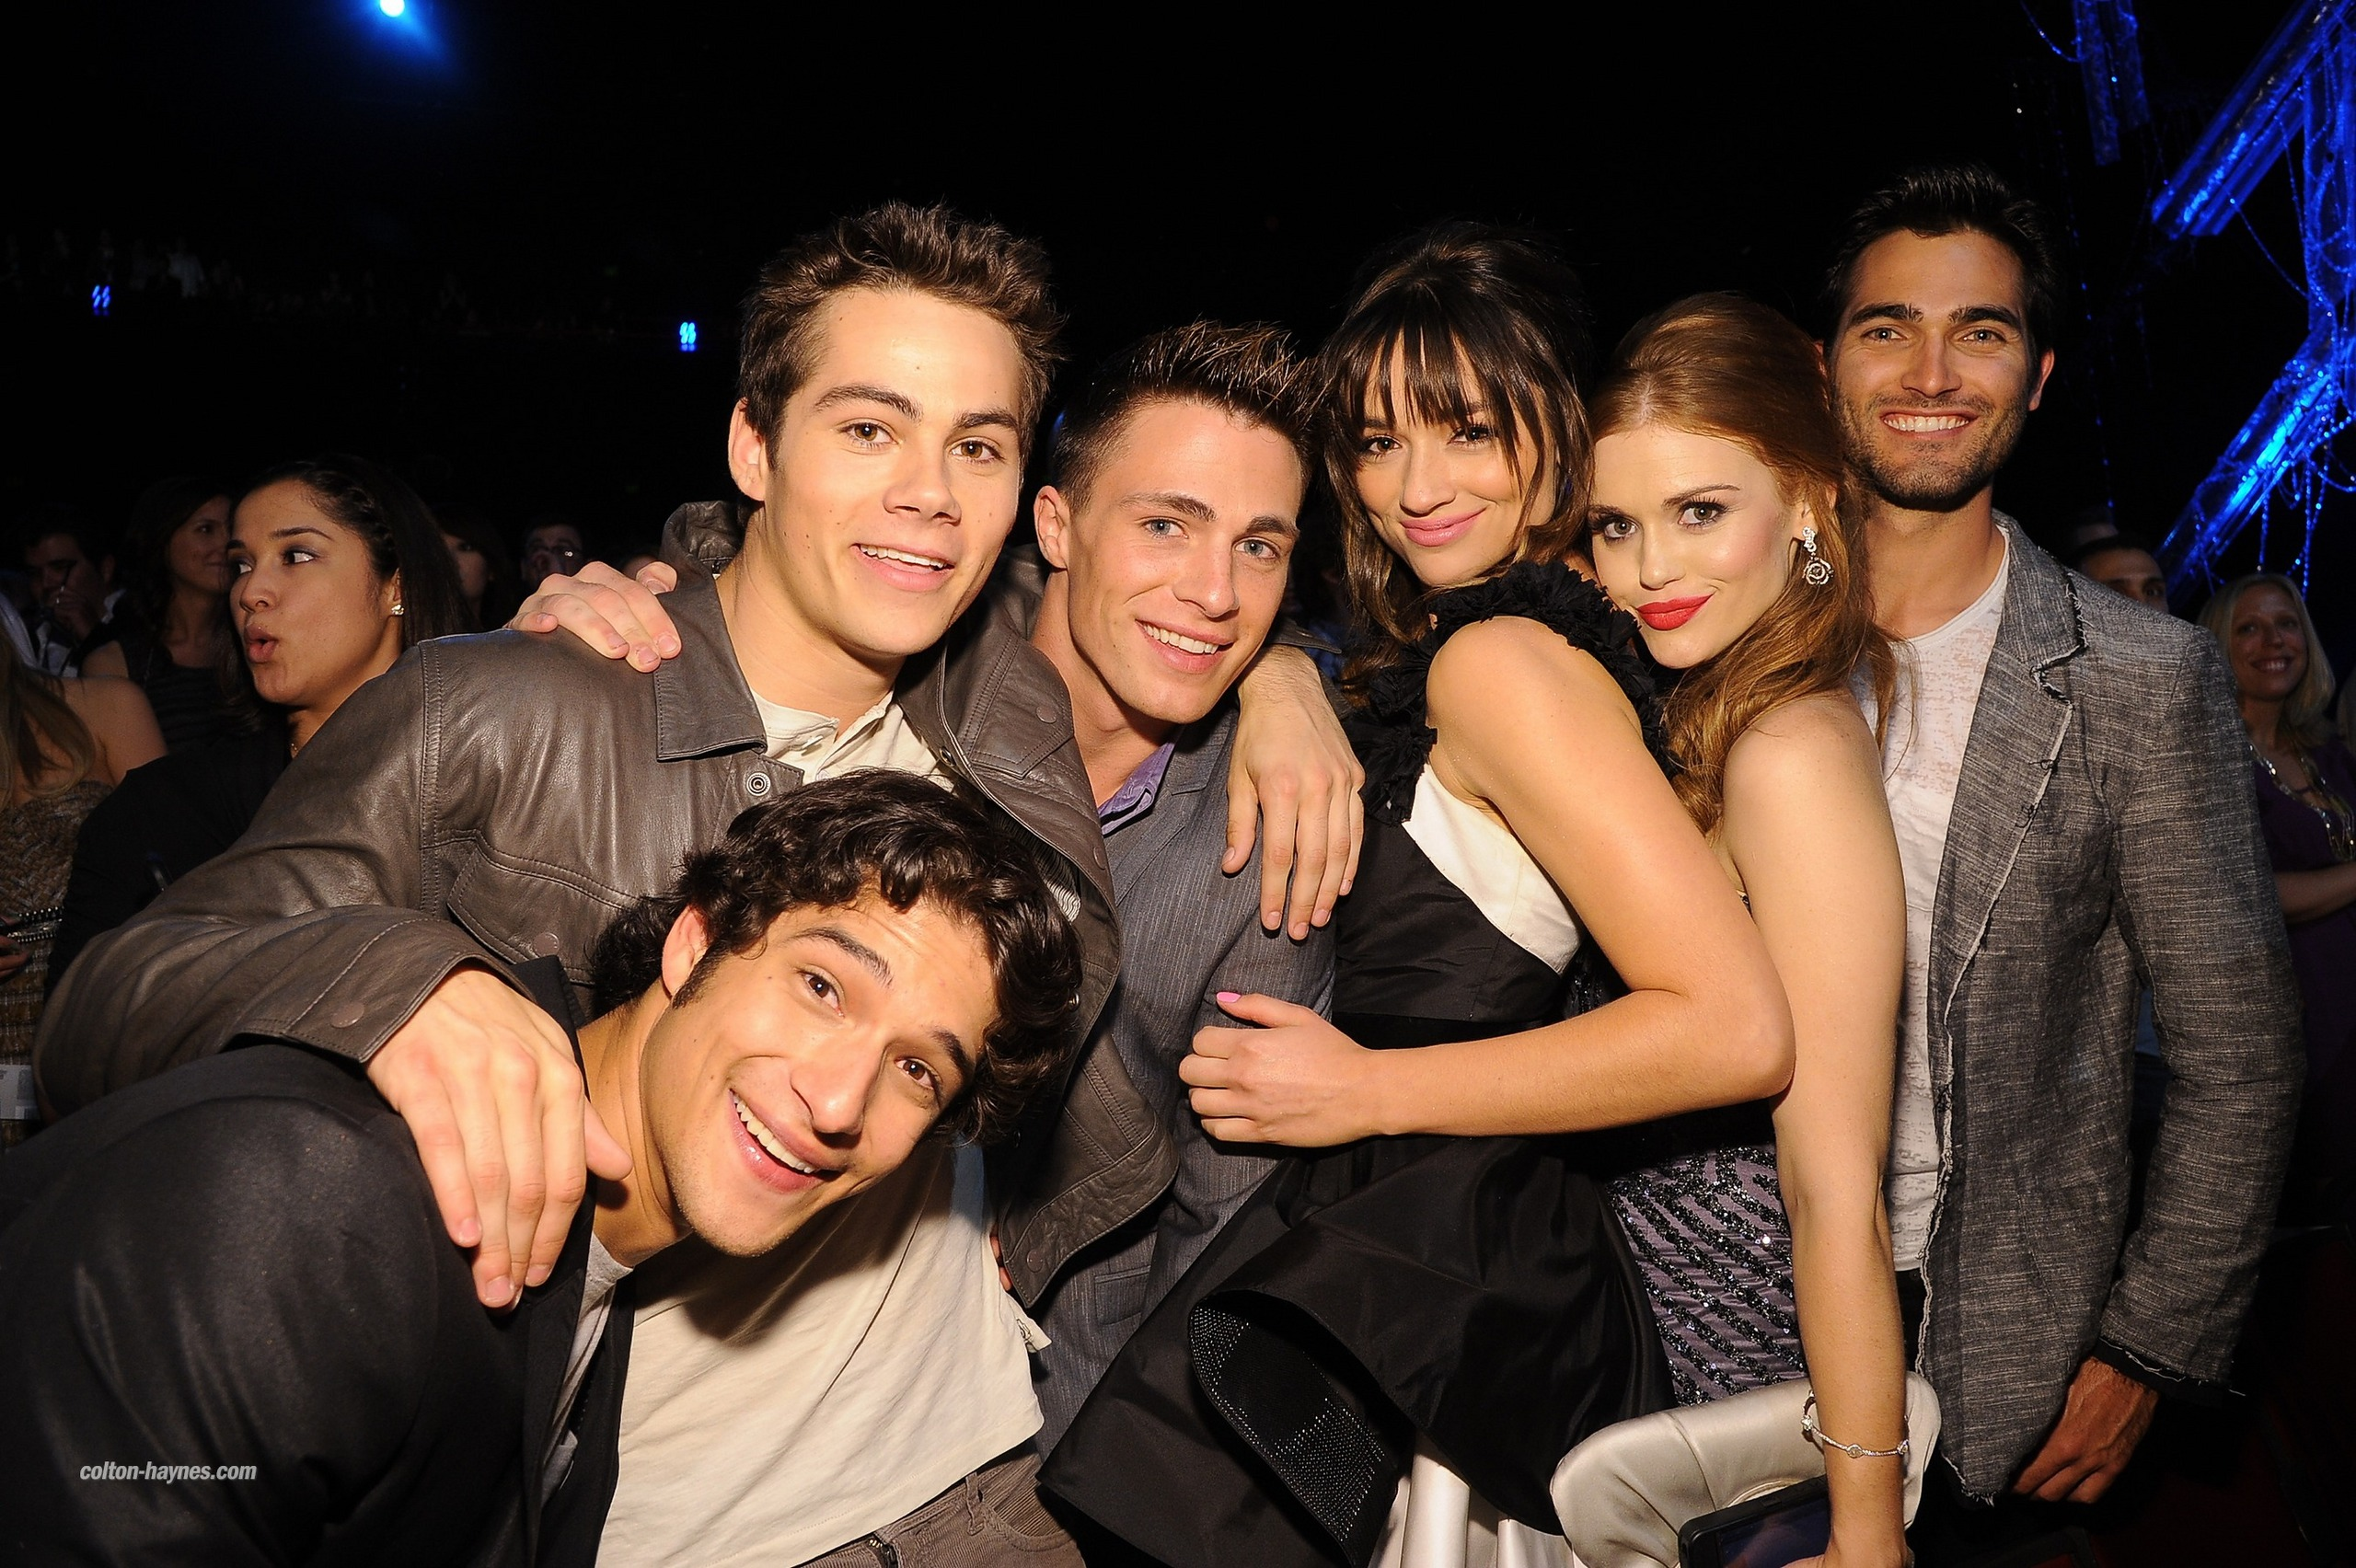 colton-holland-2011-holland-roden-and-colton-haynes-31605465-2560-1704